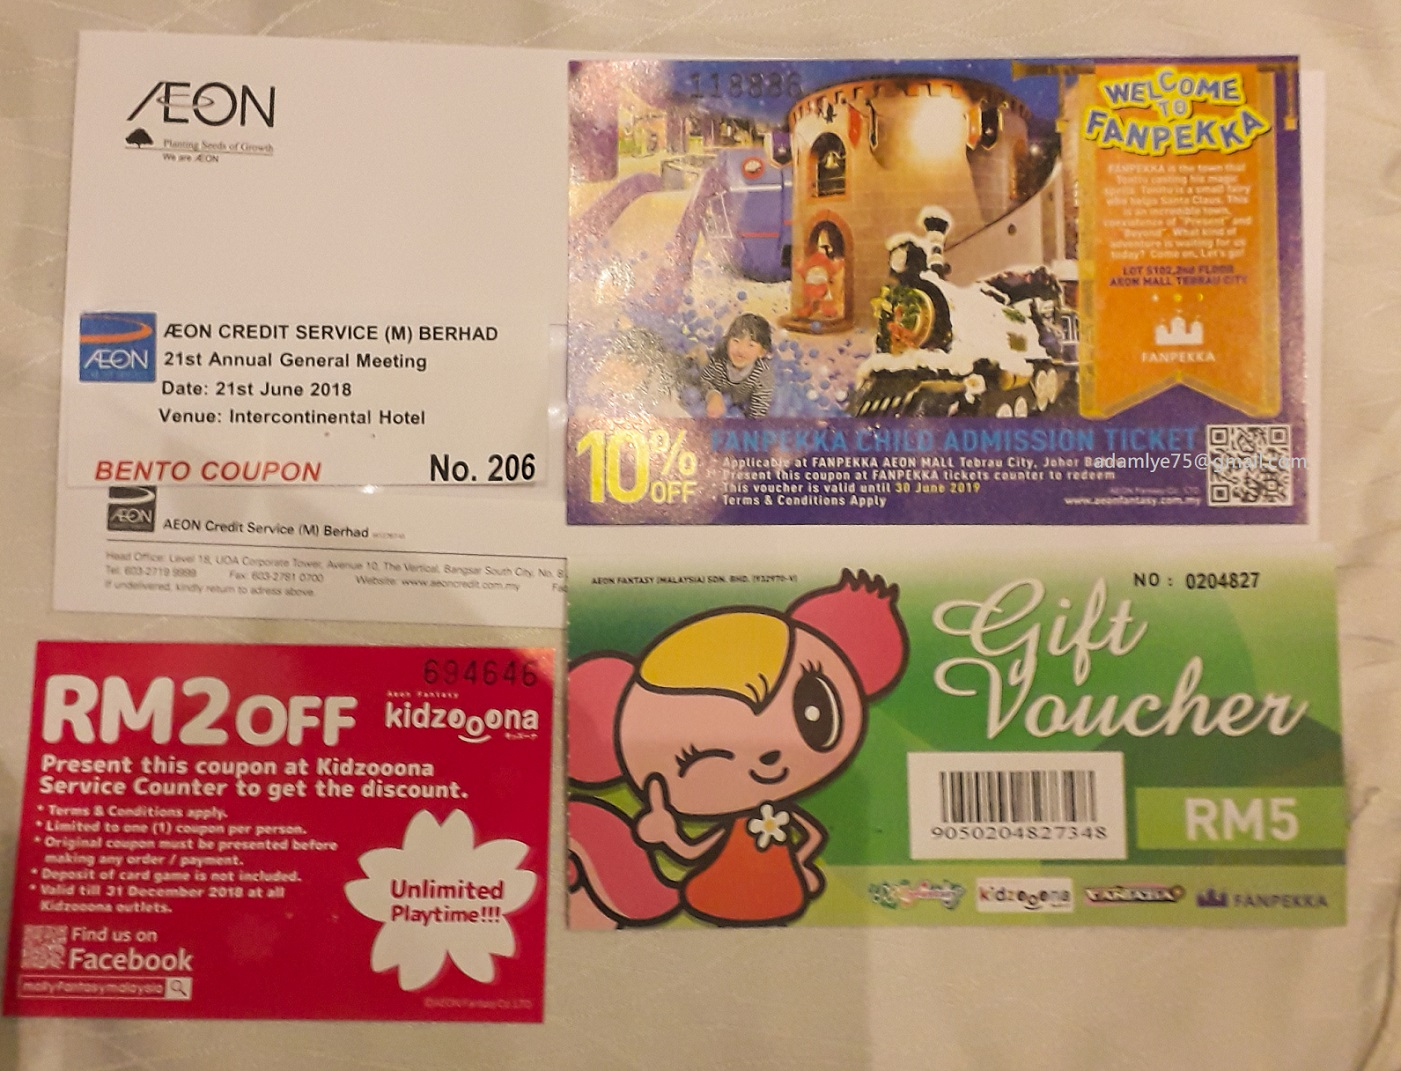 Adam Daily 5139 Aeoncr 21st Agm 2018 Jun 21 Voucher Fanpekka